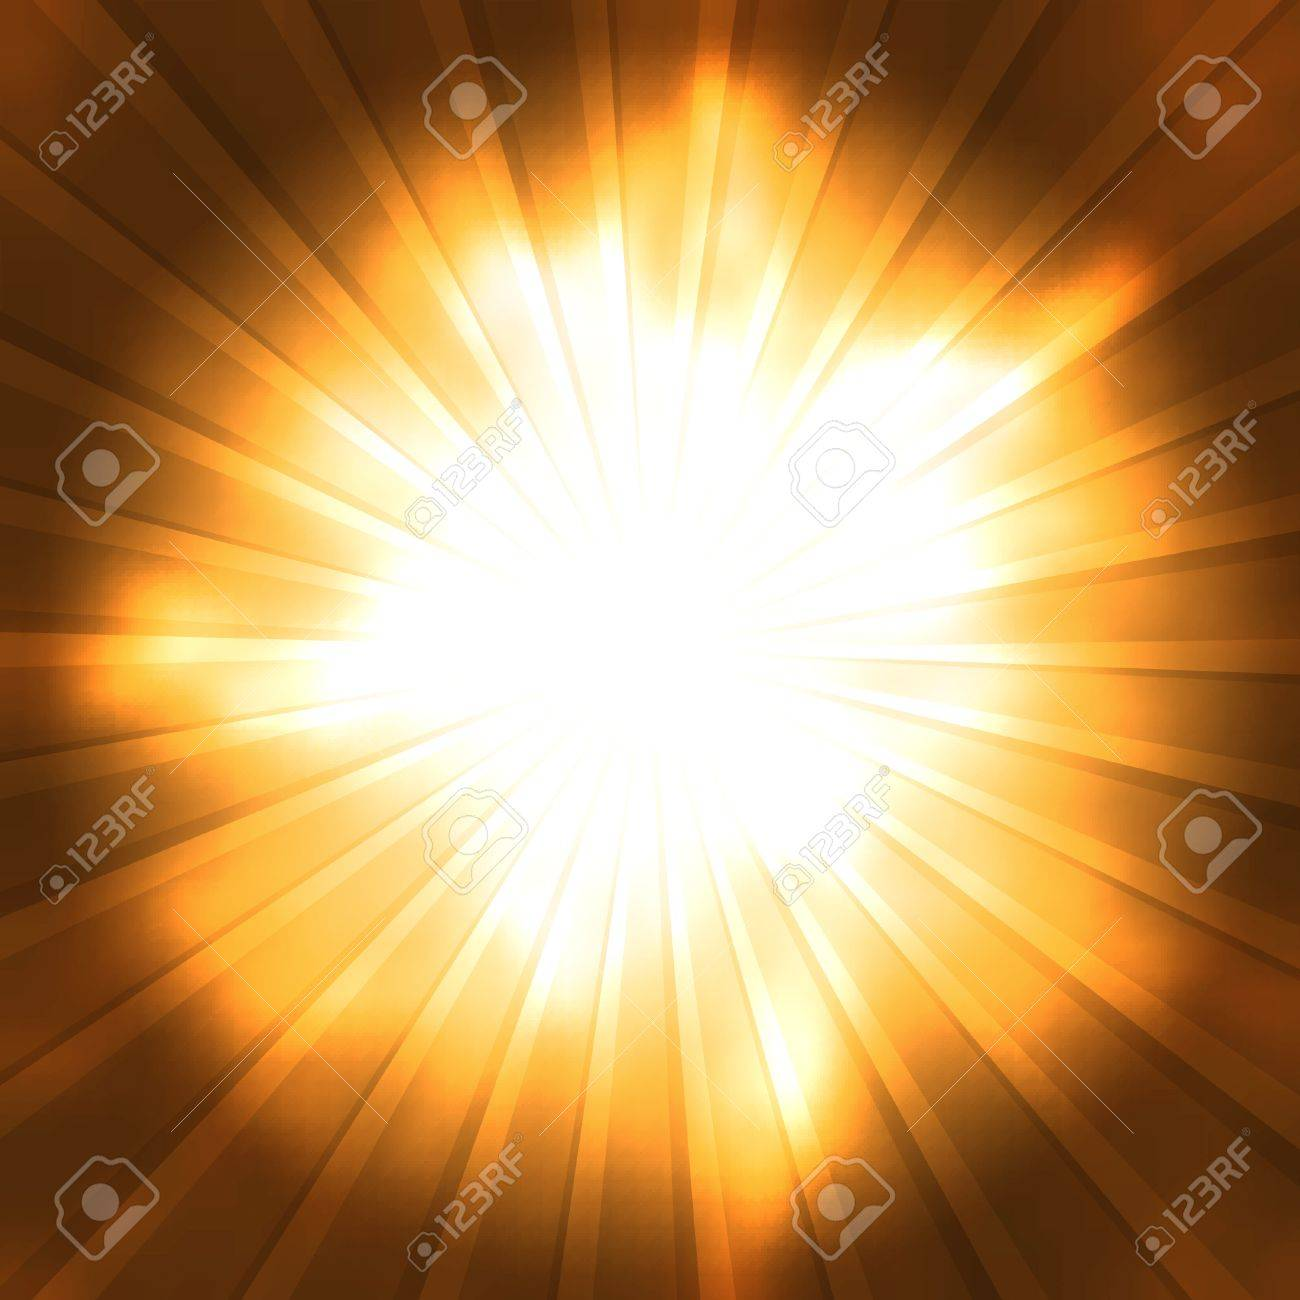 Background image center - Orange Rays Converge Toward The Center Abstract Background Stock Vector 11620577